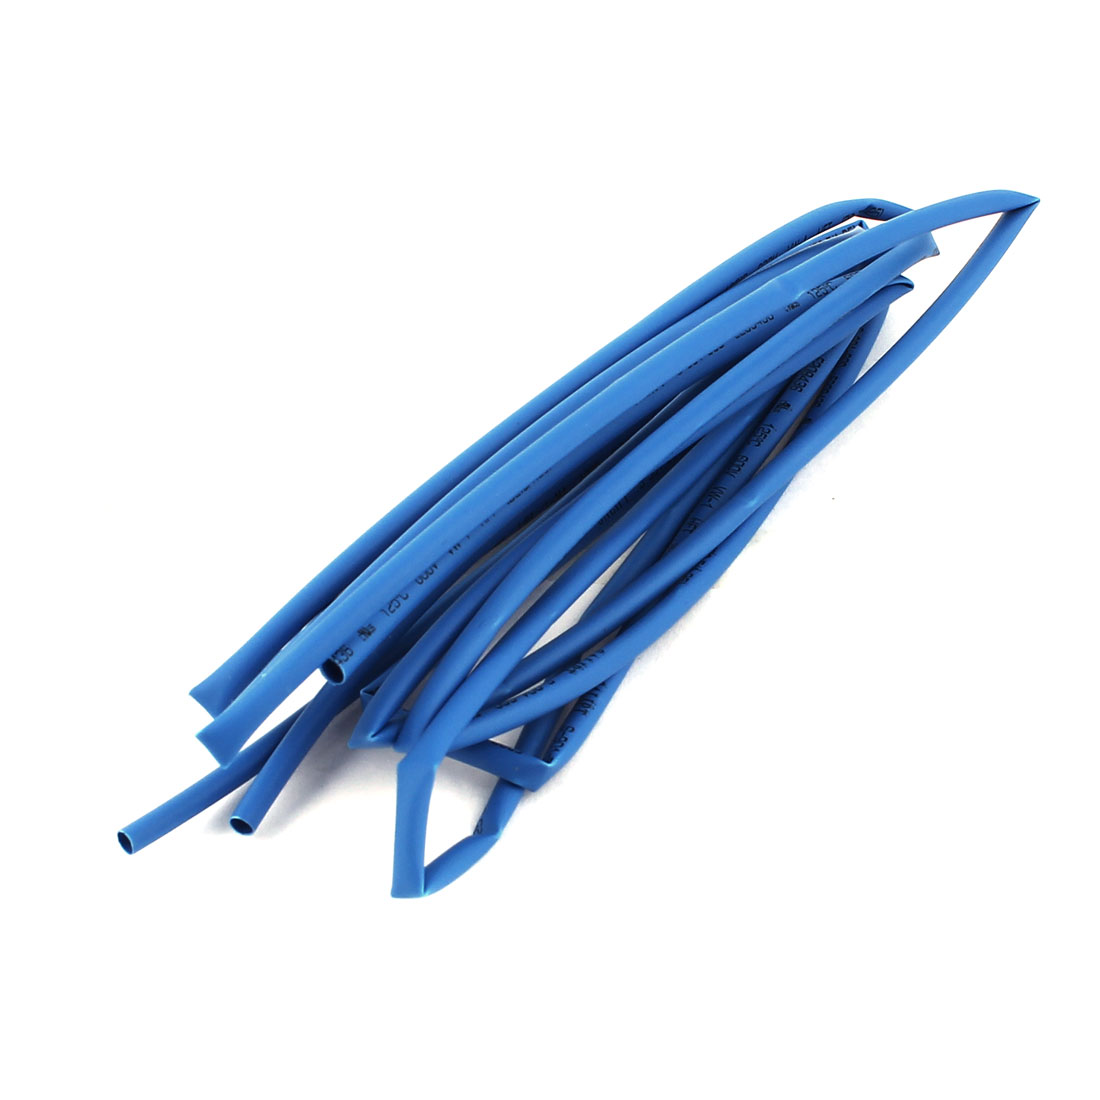 2Pcs 600V 125C Dia Ratio 2/1 2.5mm 1.25mm Blue Insulated Heat Shrinkable Tube Pipe 1m for RC Model